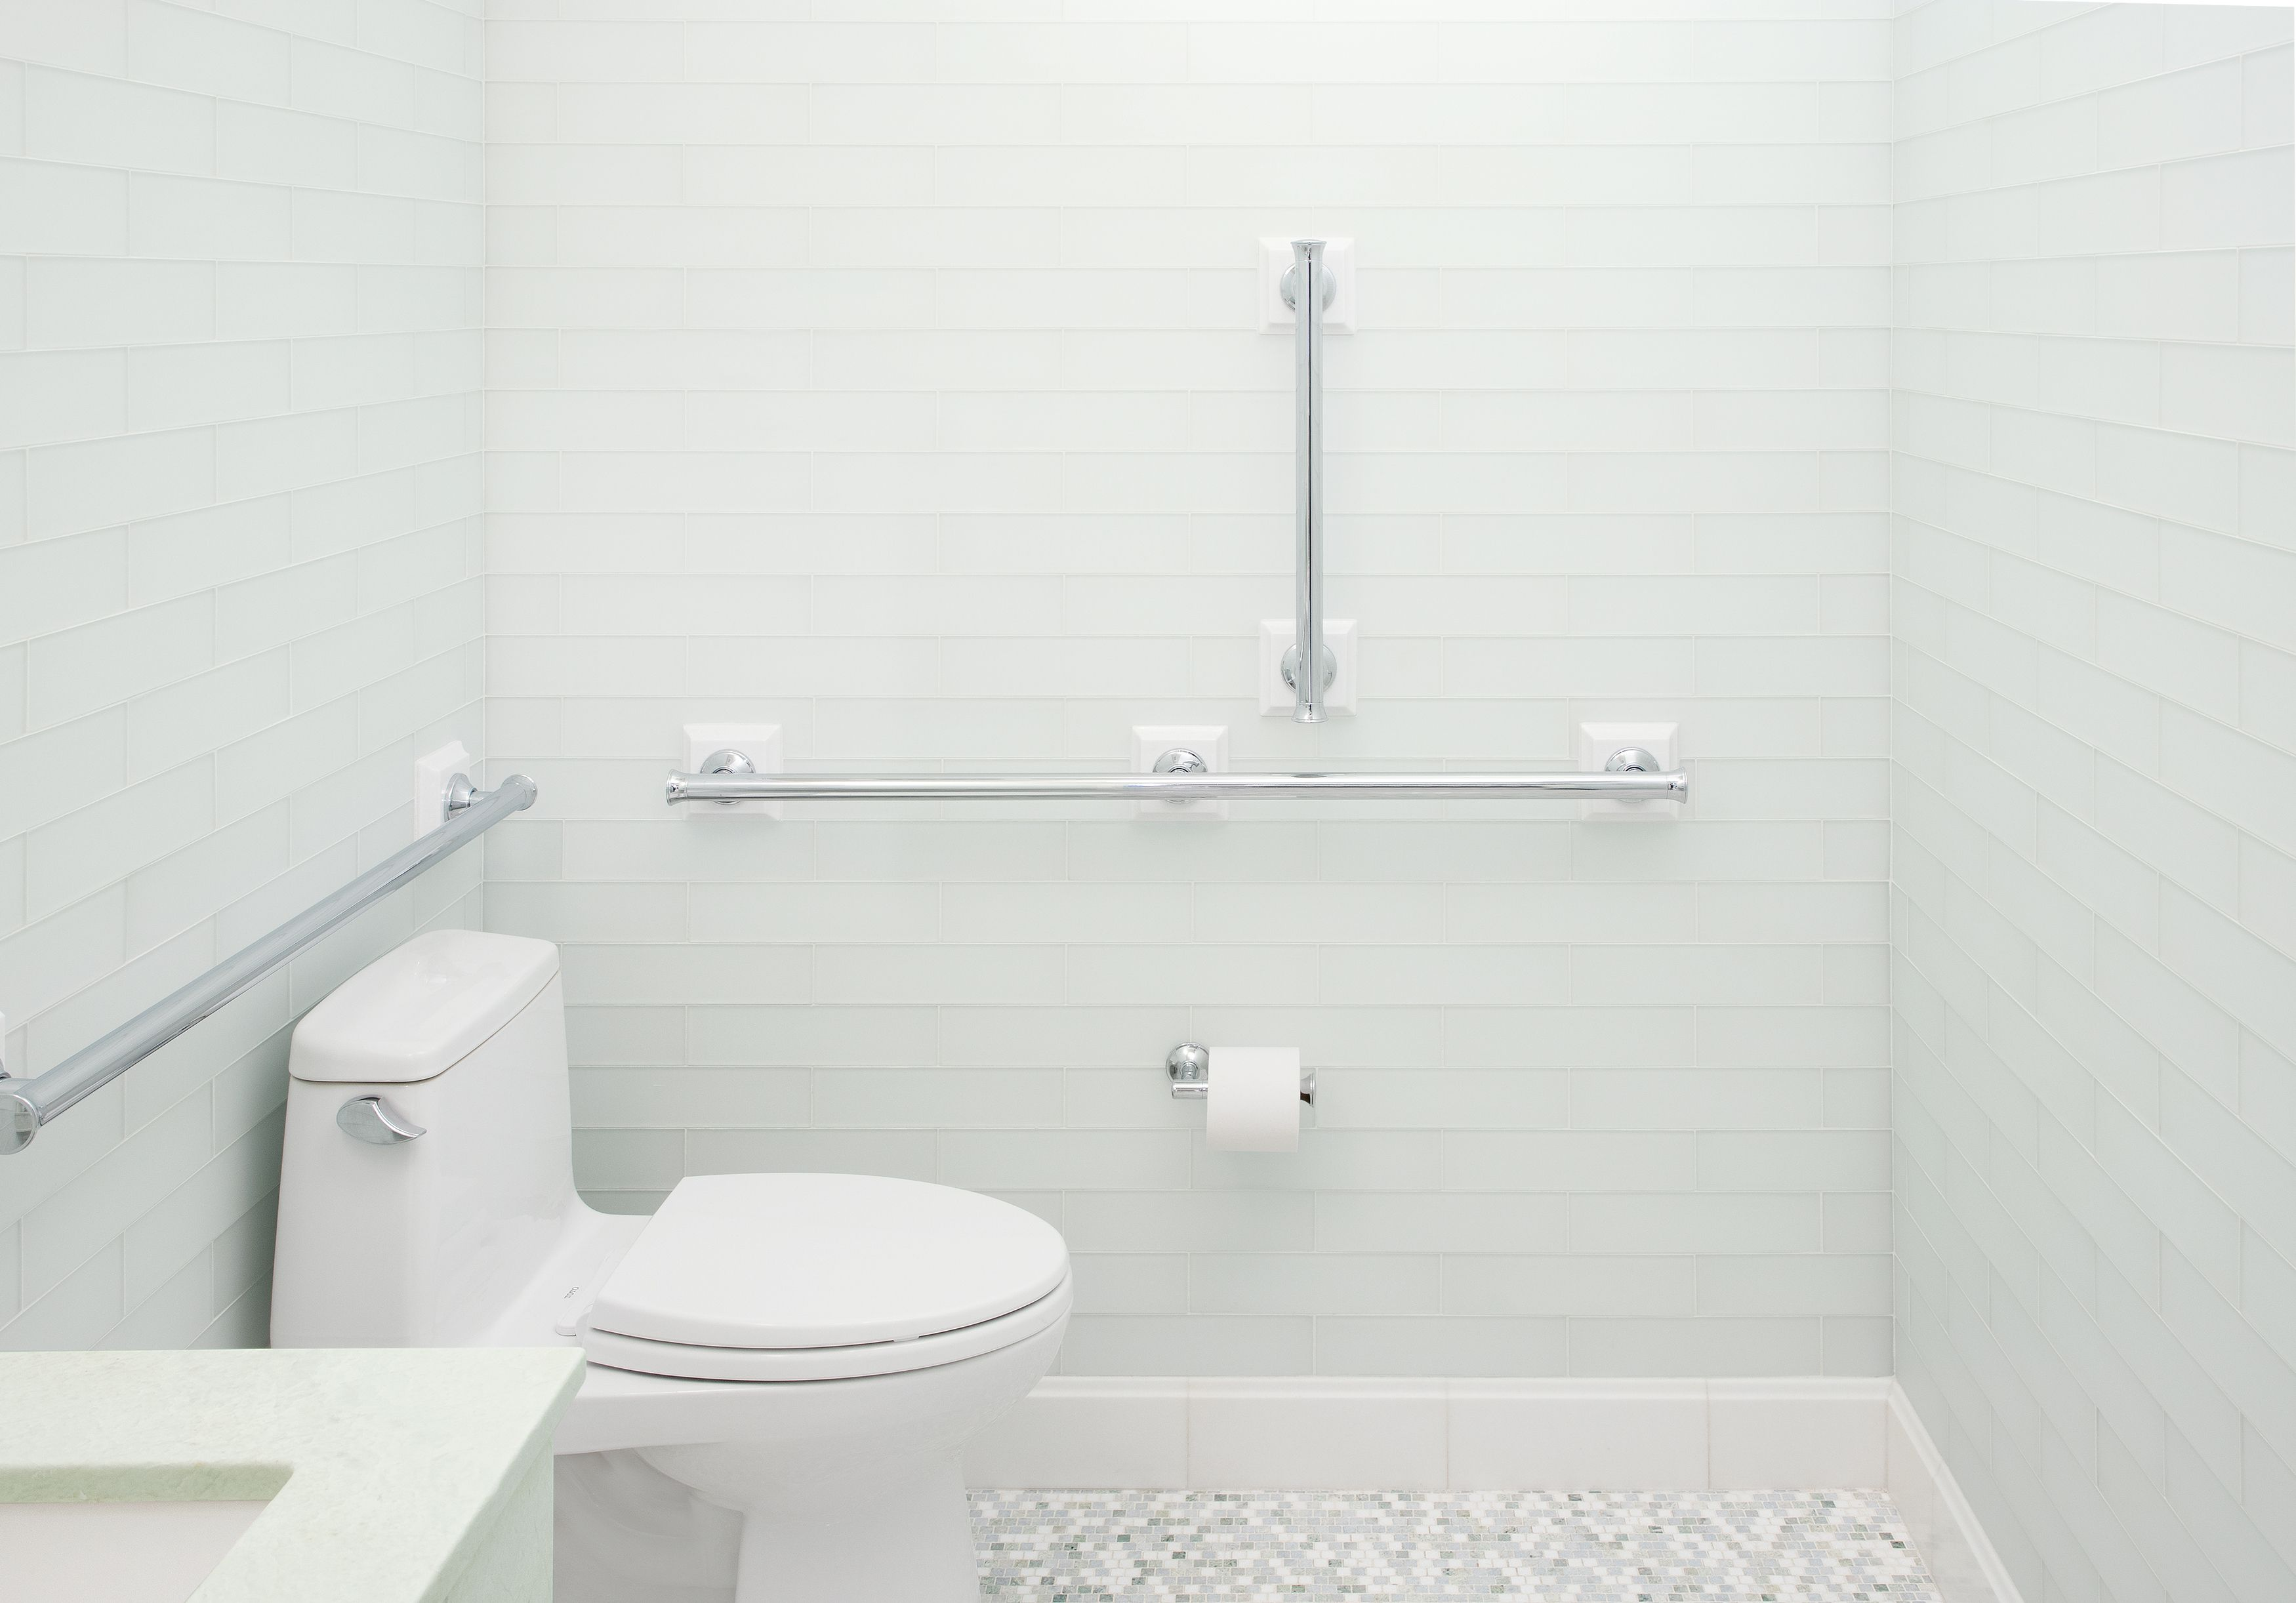 This commercial bathroom design by Denes Petoe, is decked out in ...